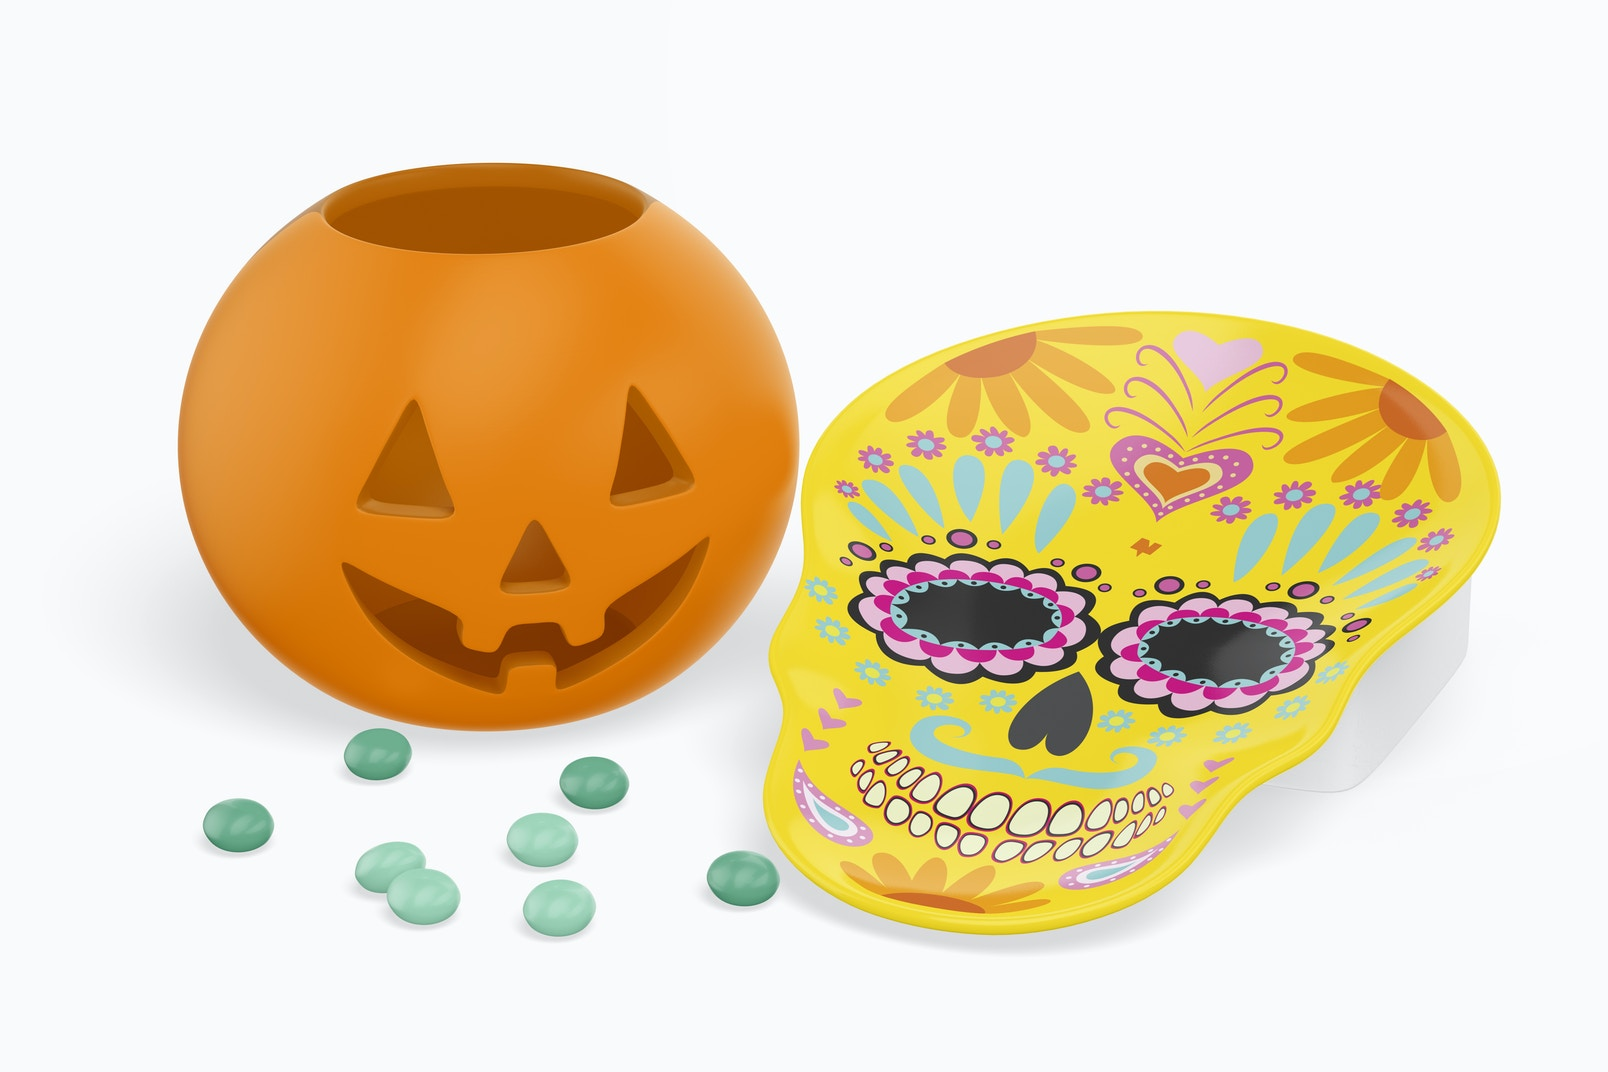 Skull Shaped Plate Mockup with Candies